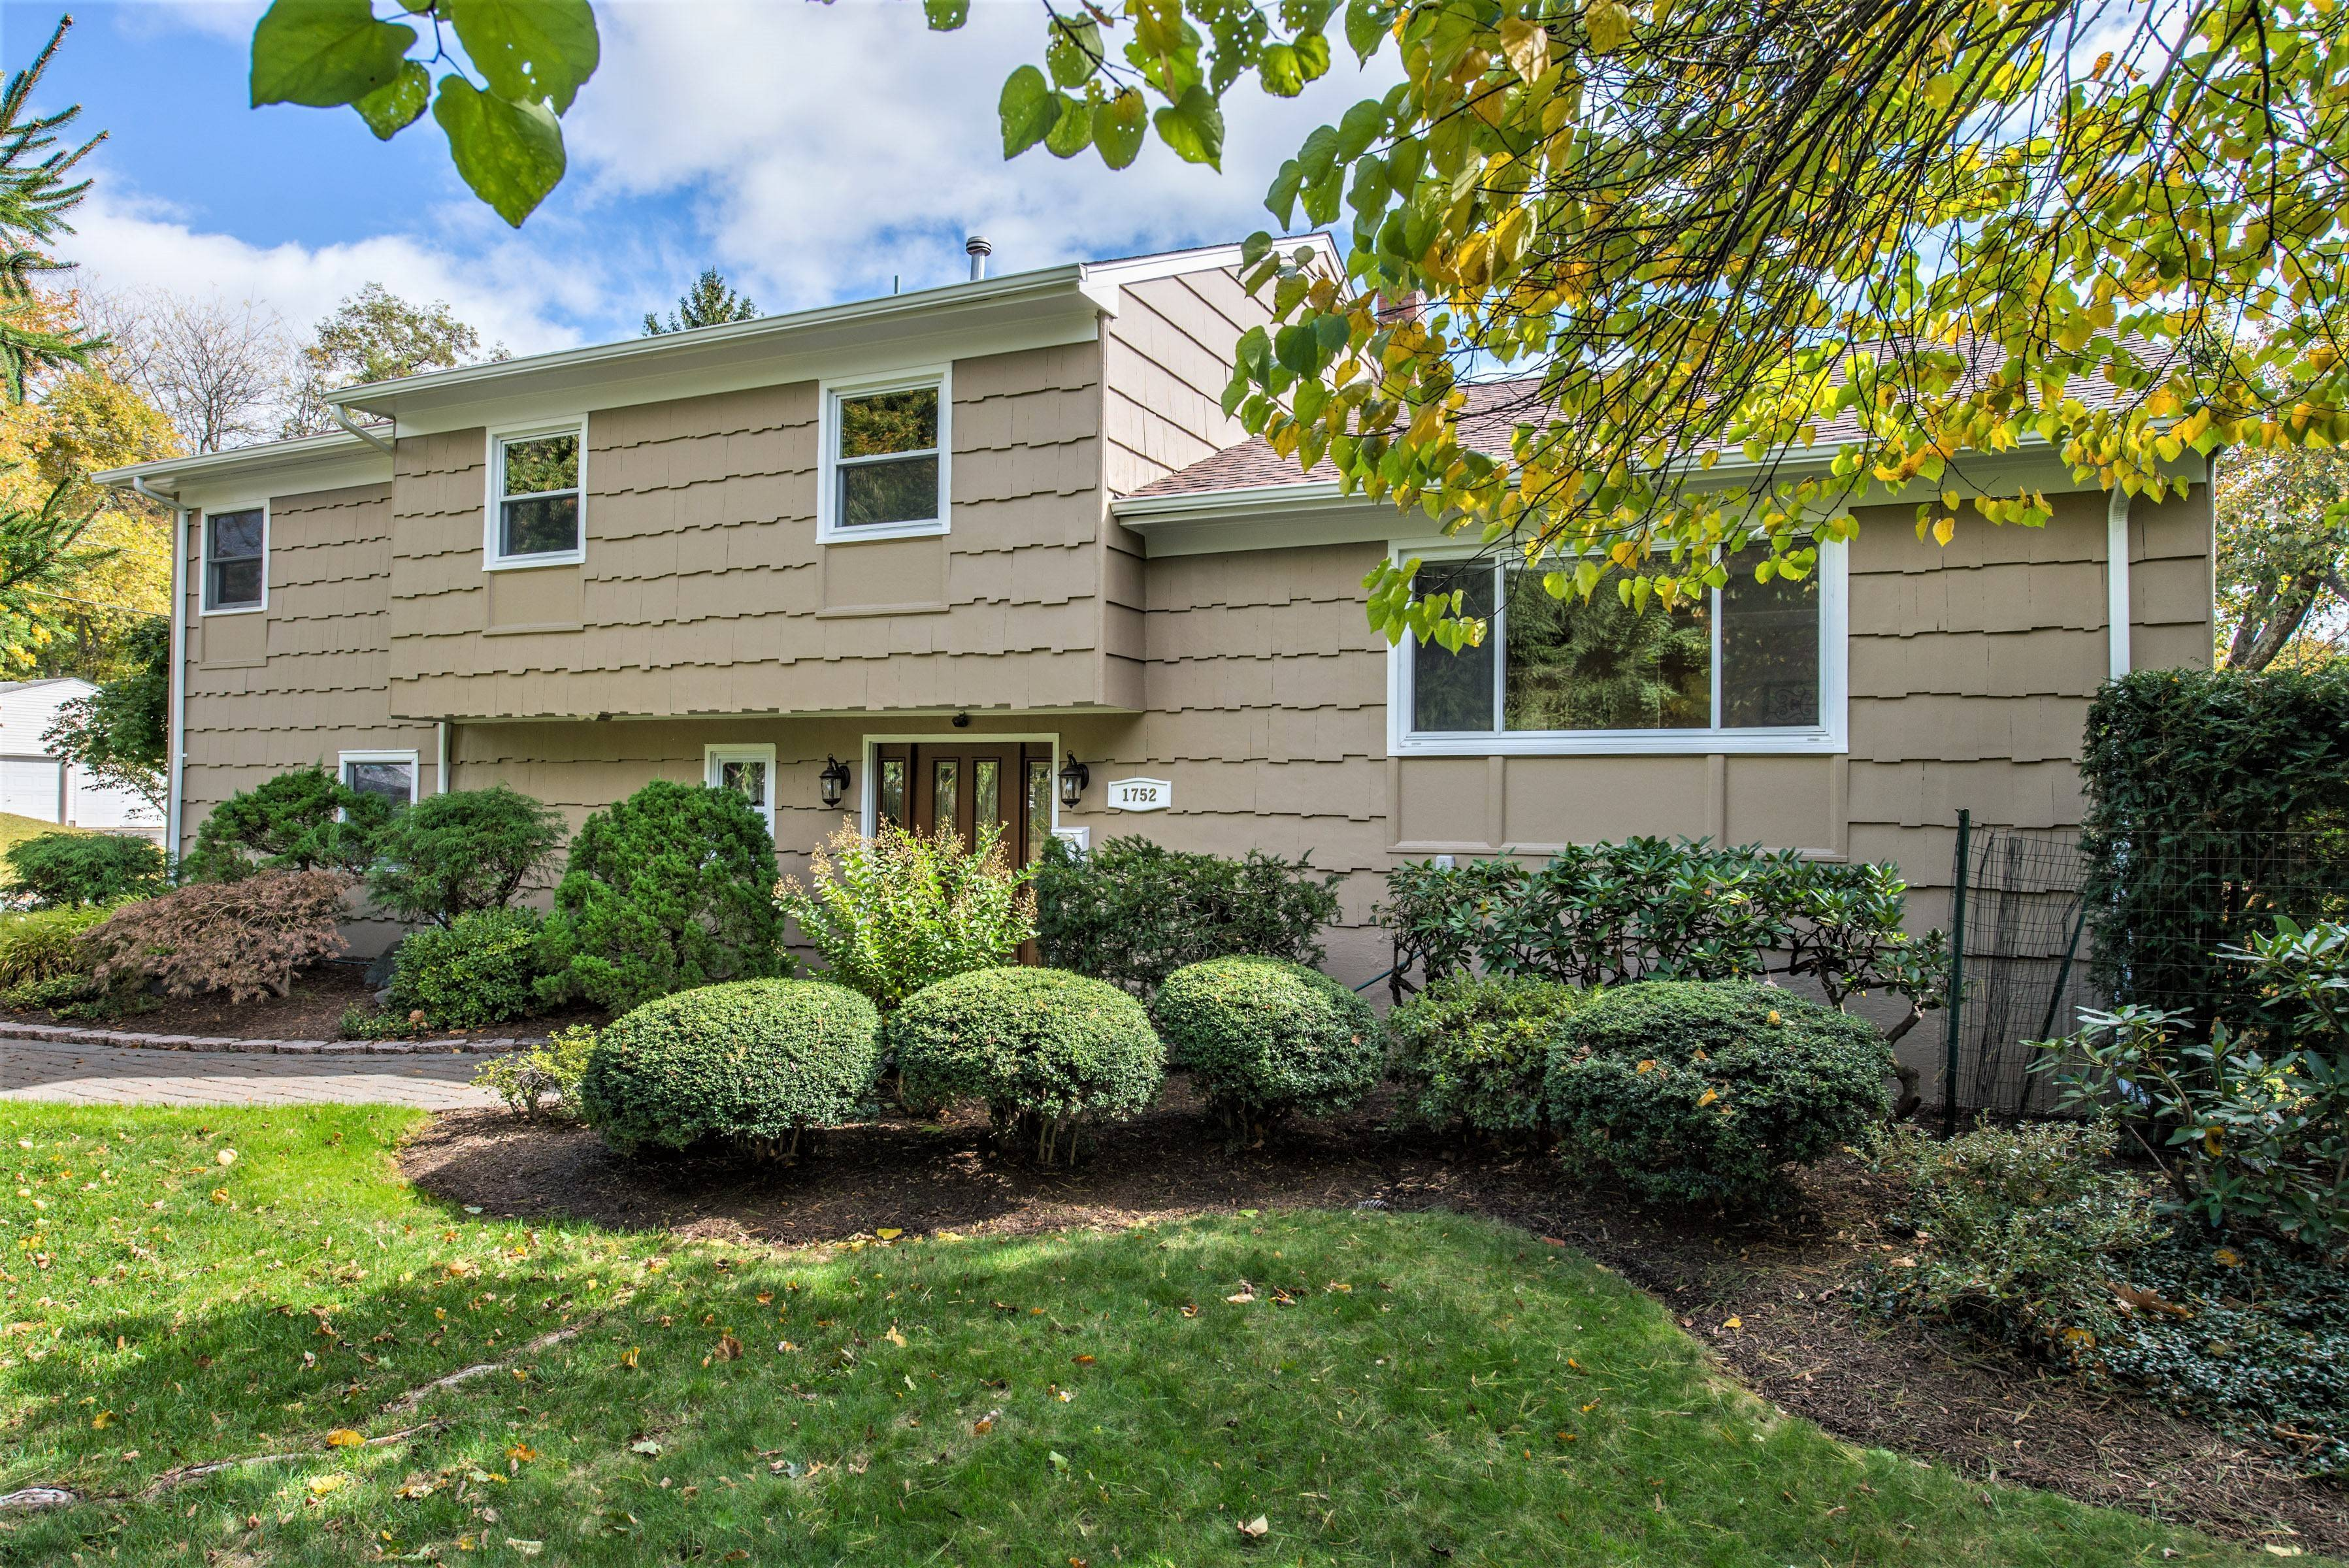 1752 Springfield Ave. Split Level with plenty of space options